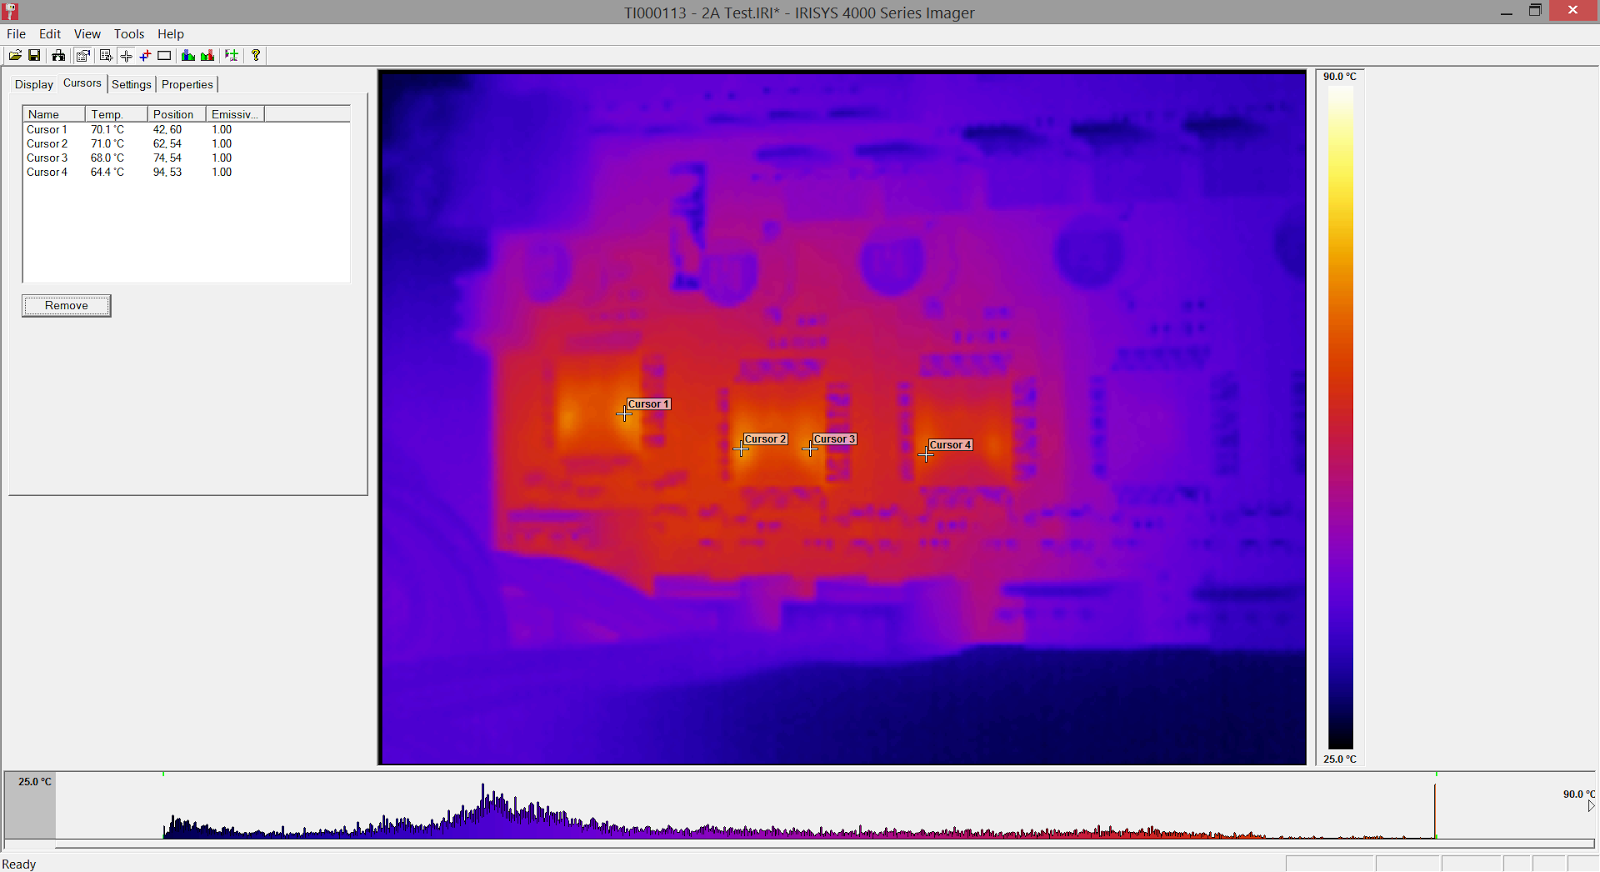 DuetWifi Thermal Test 2A Normal Stepping